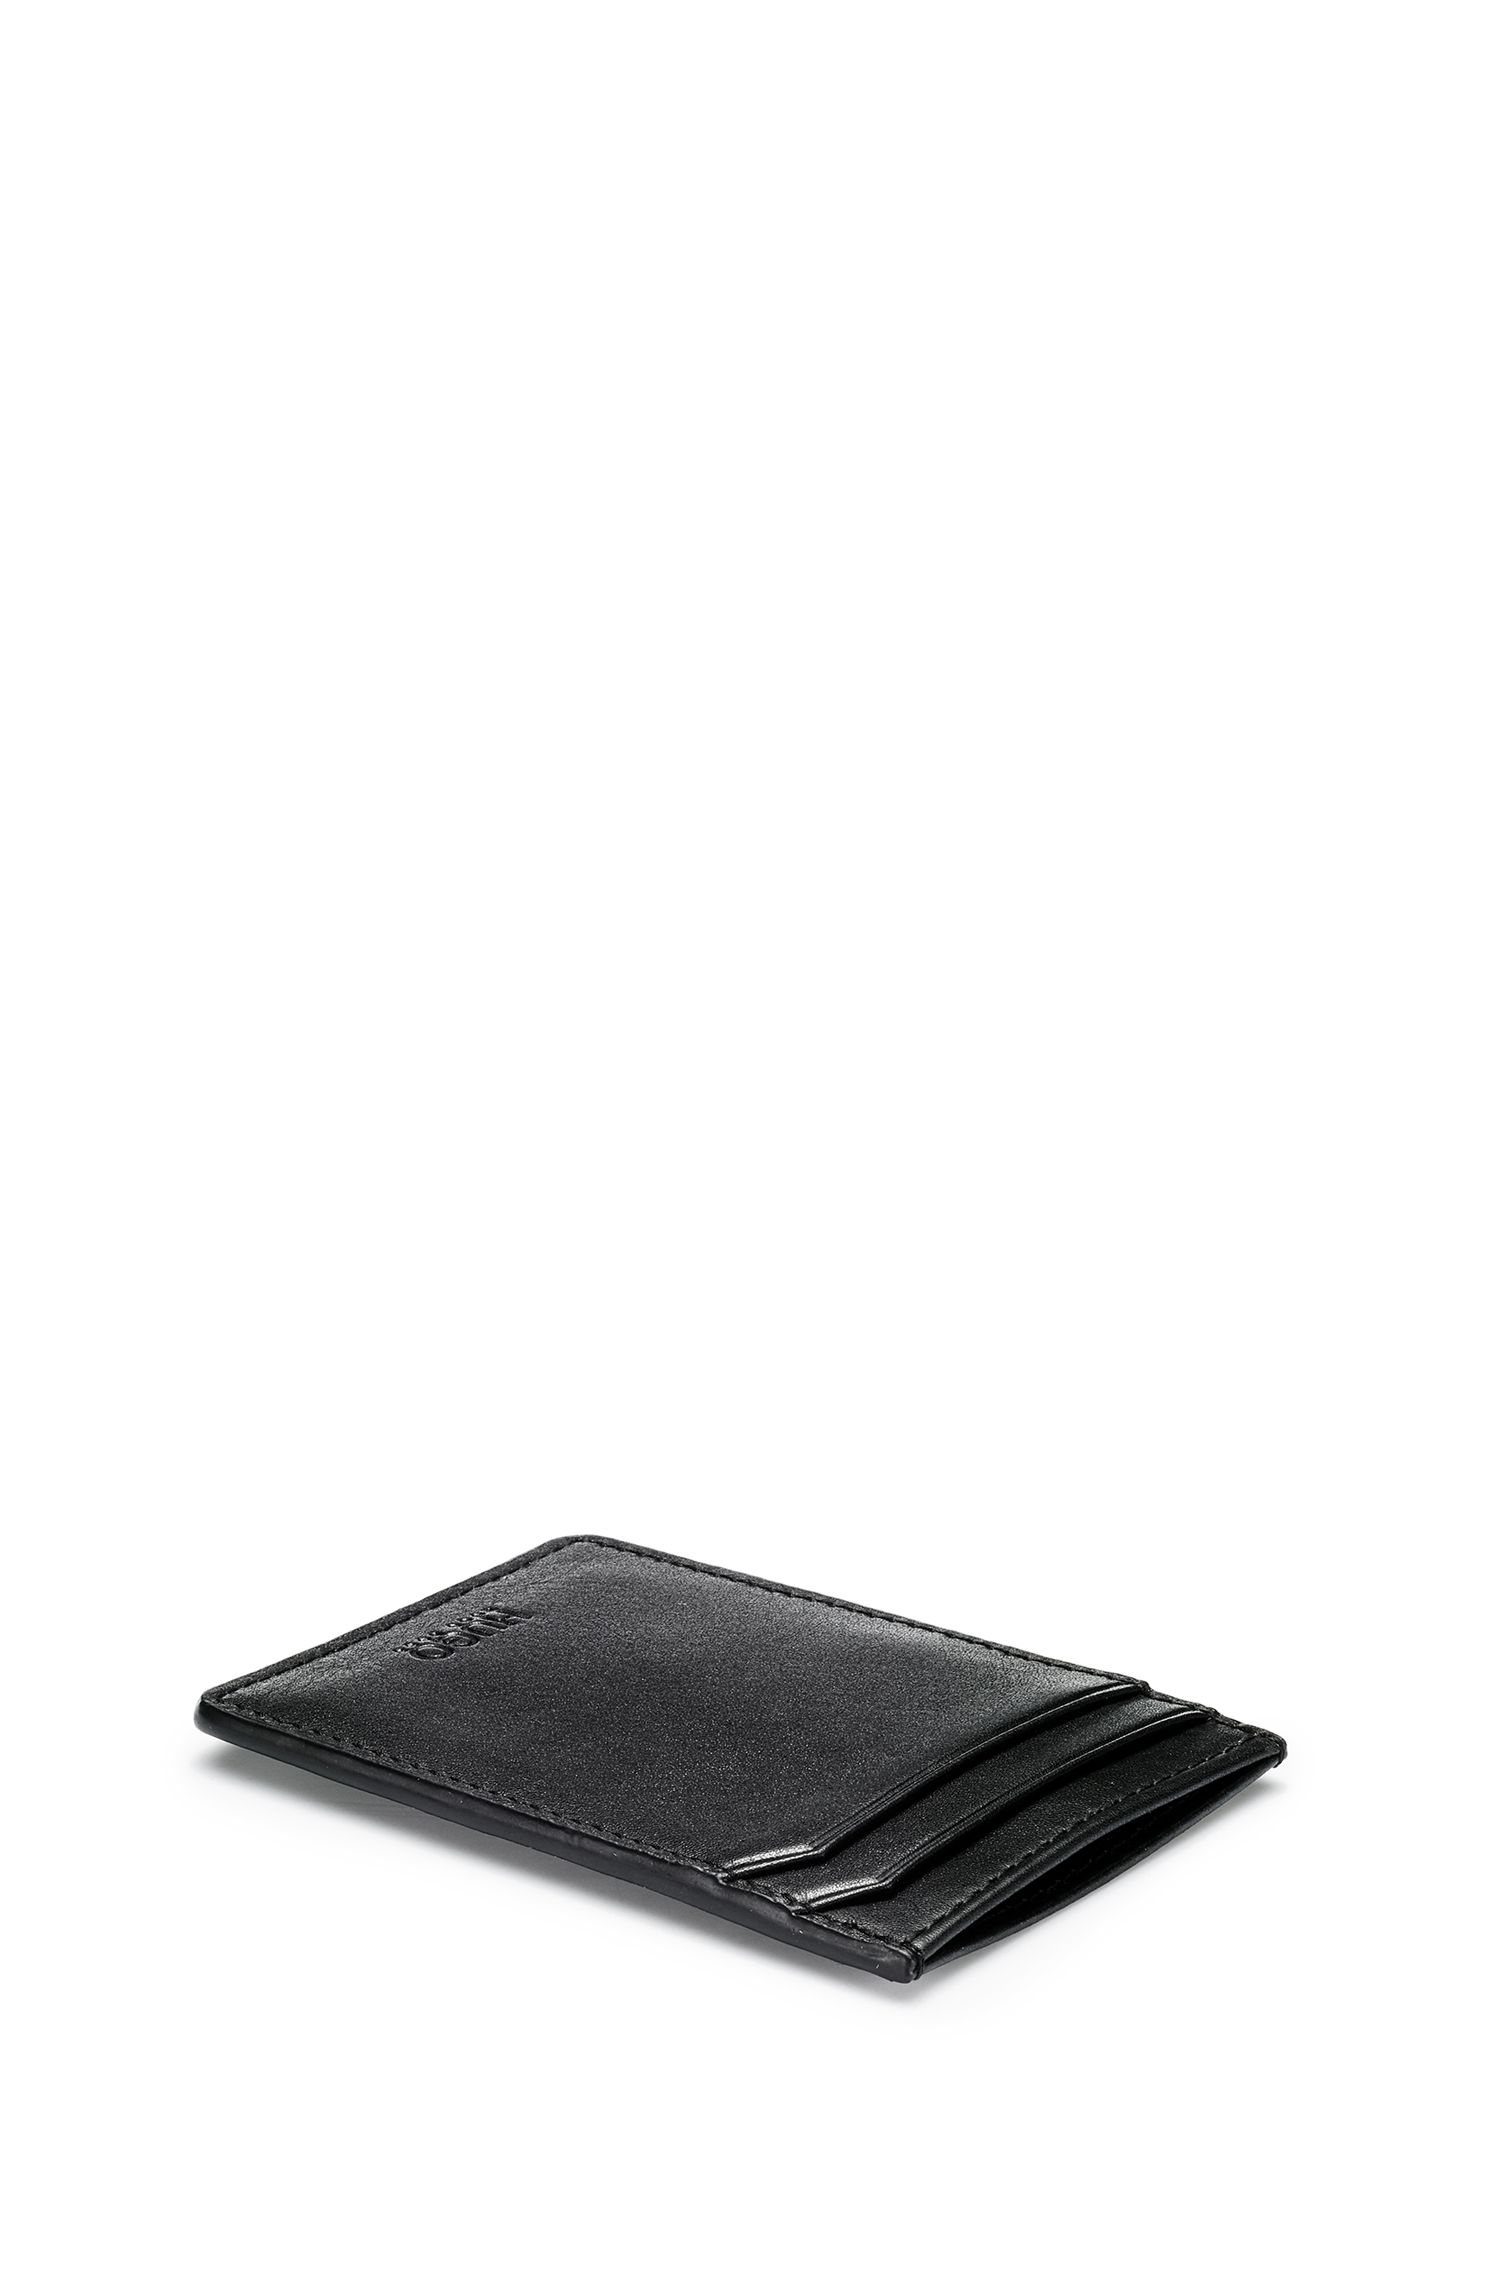 Leather wallet and card holder gift set with bear motif, Black